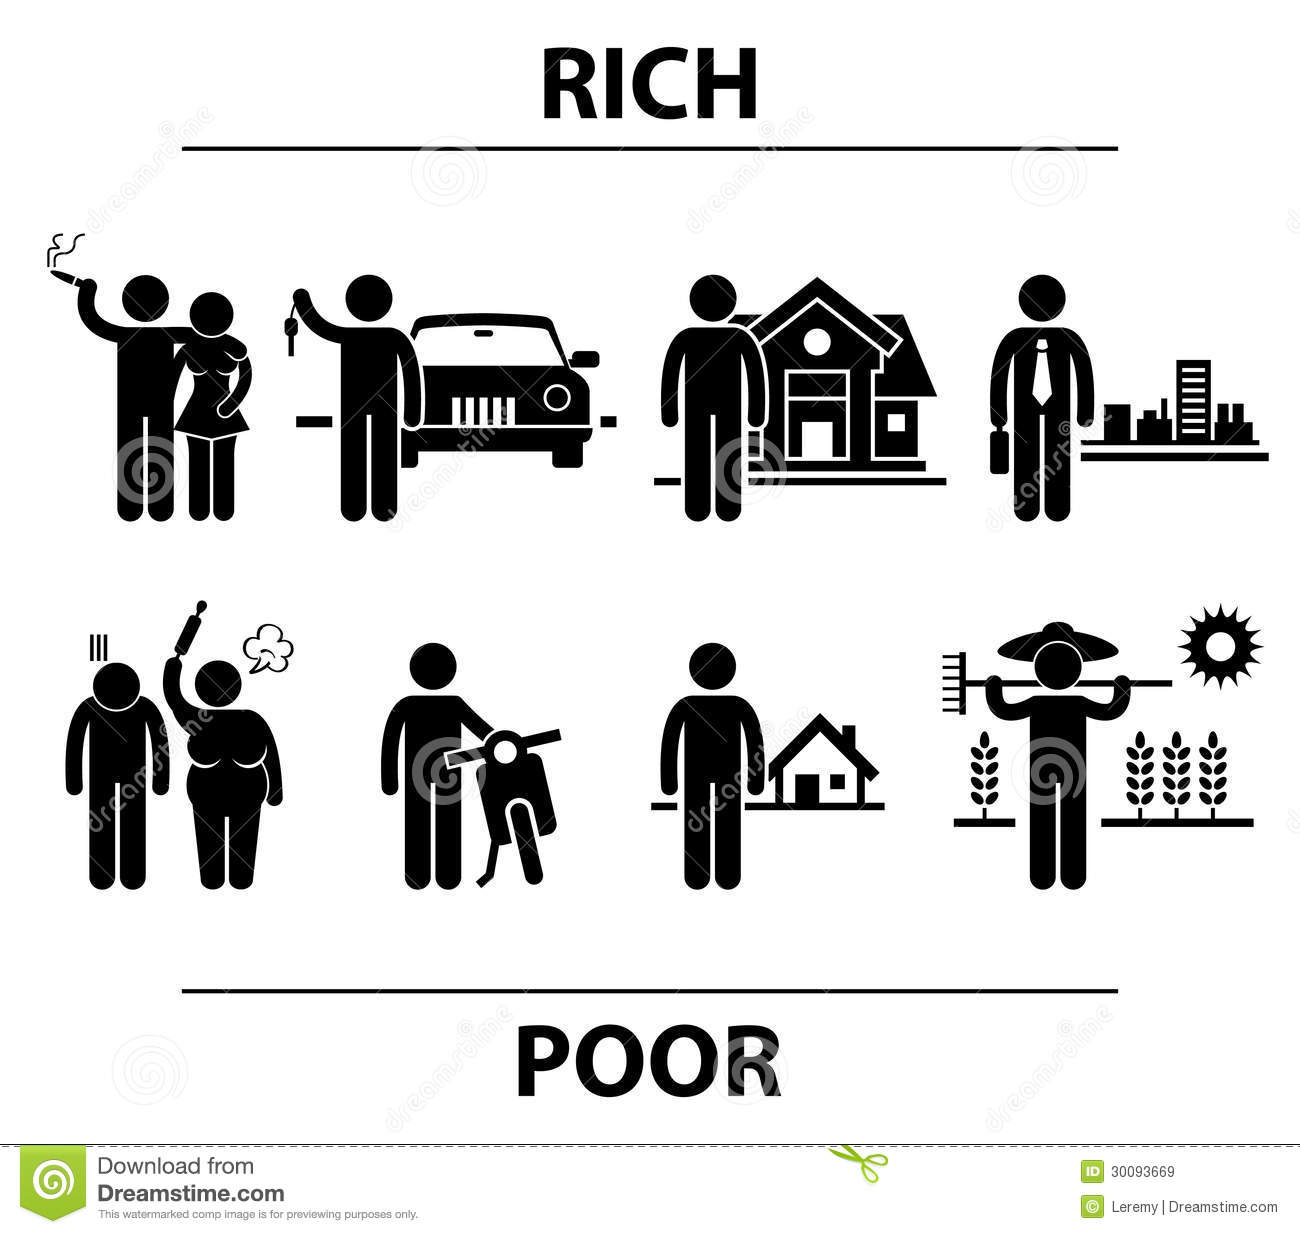 compare and contrast rich and poor Disparity between rich and poor has risen huge discrepancy between the elite and an illiterate mass 3 reasons for the disparity between rich and poor in india grow up of economy but not enough places to reason: bad infrastructure, restrictive working laws , higher labor costs (compared to china) in.